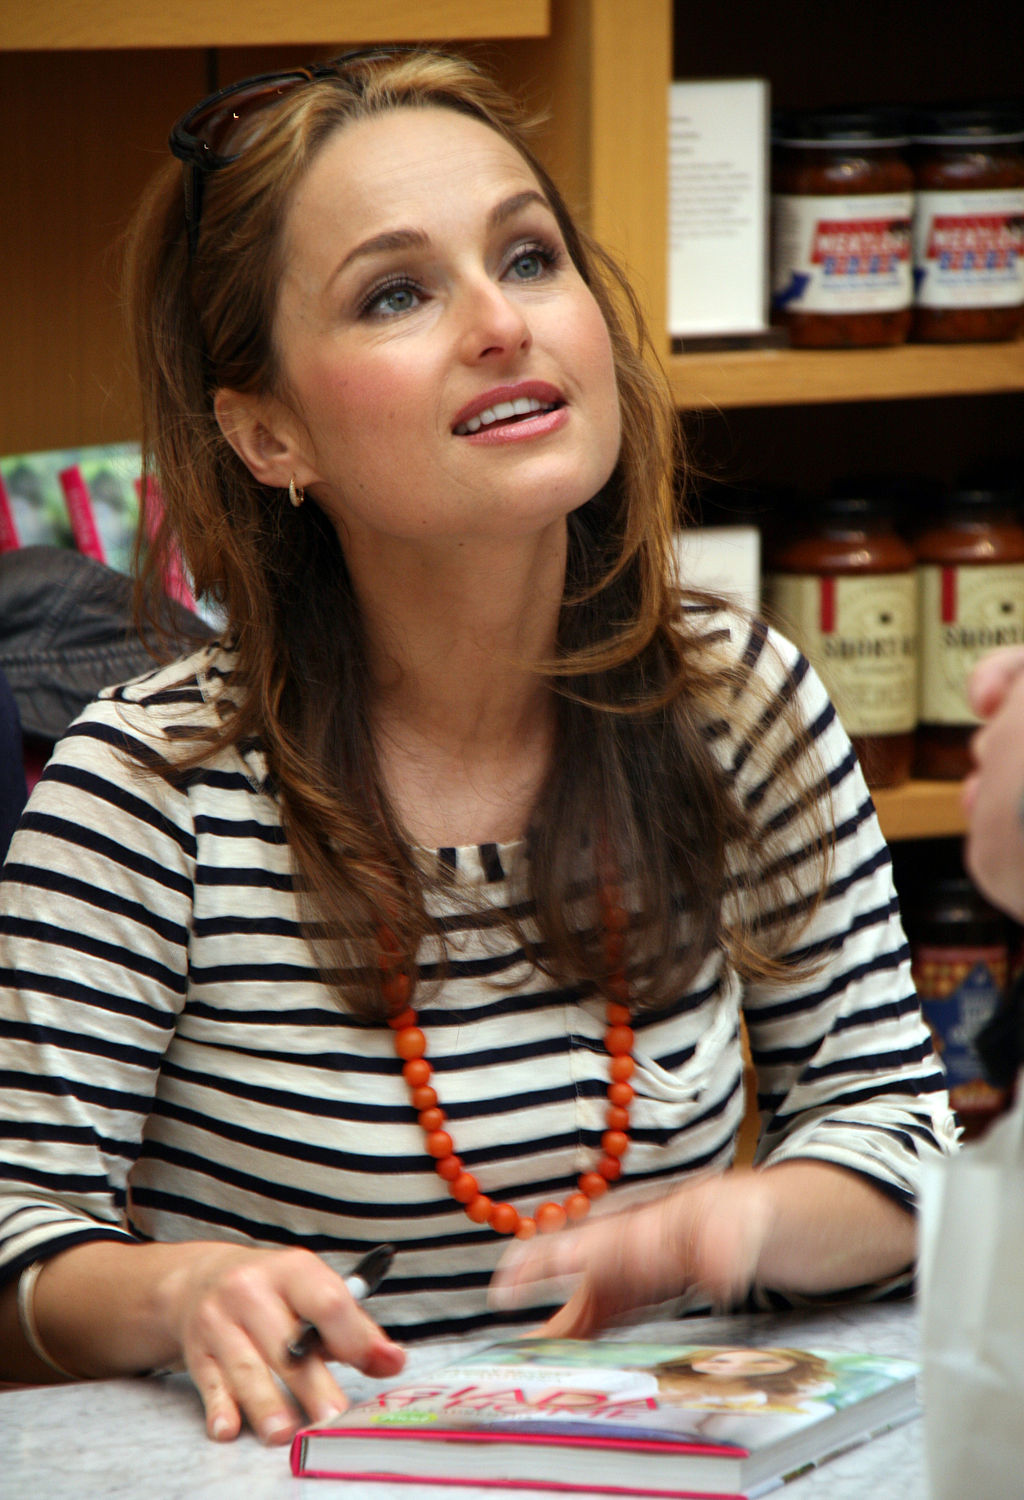 Giada De Laurentiis, Top-Rated Italian Chefs - The Proud Italian